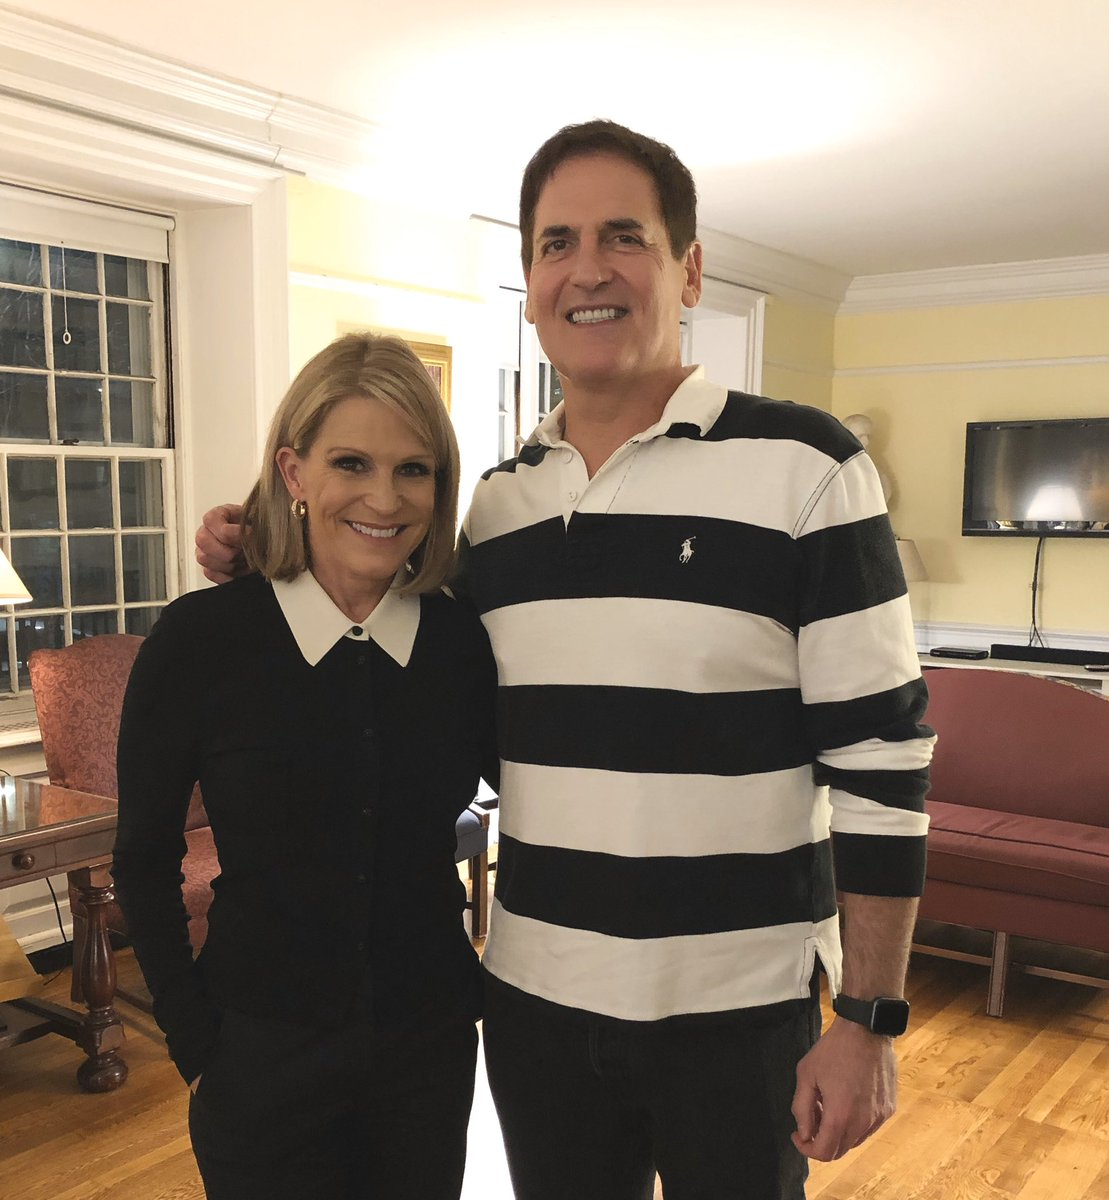 Great to hear @mcuban secrets to success in life and business at @harvardiop